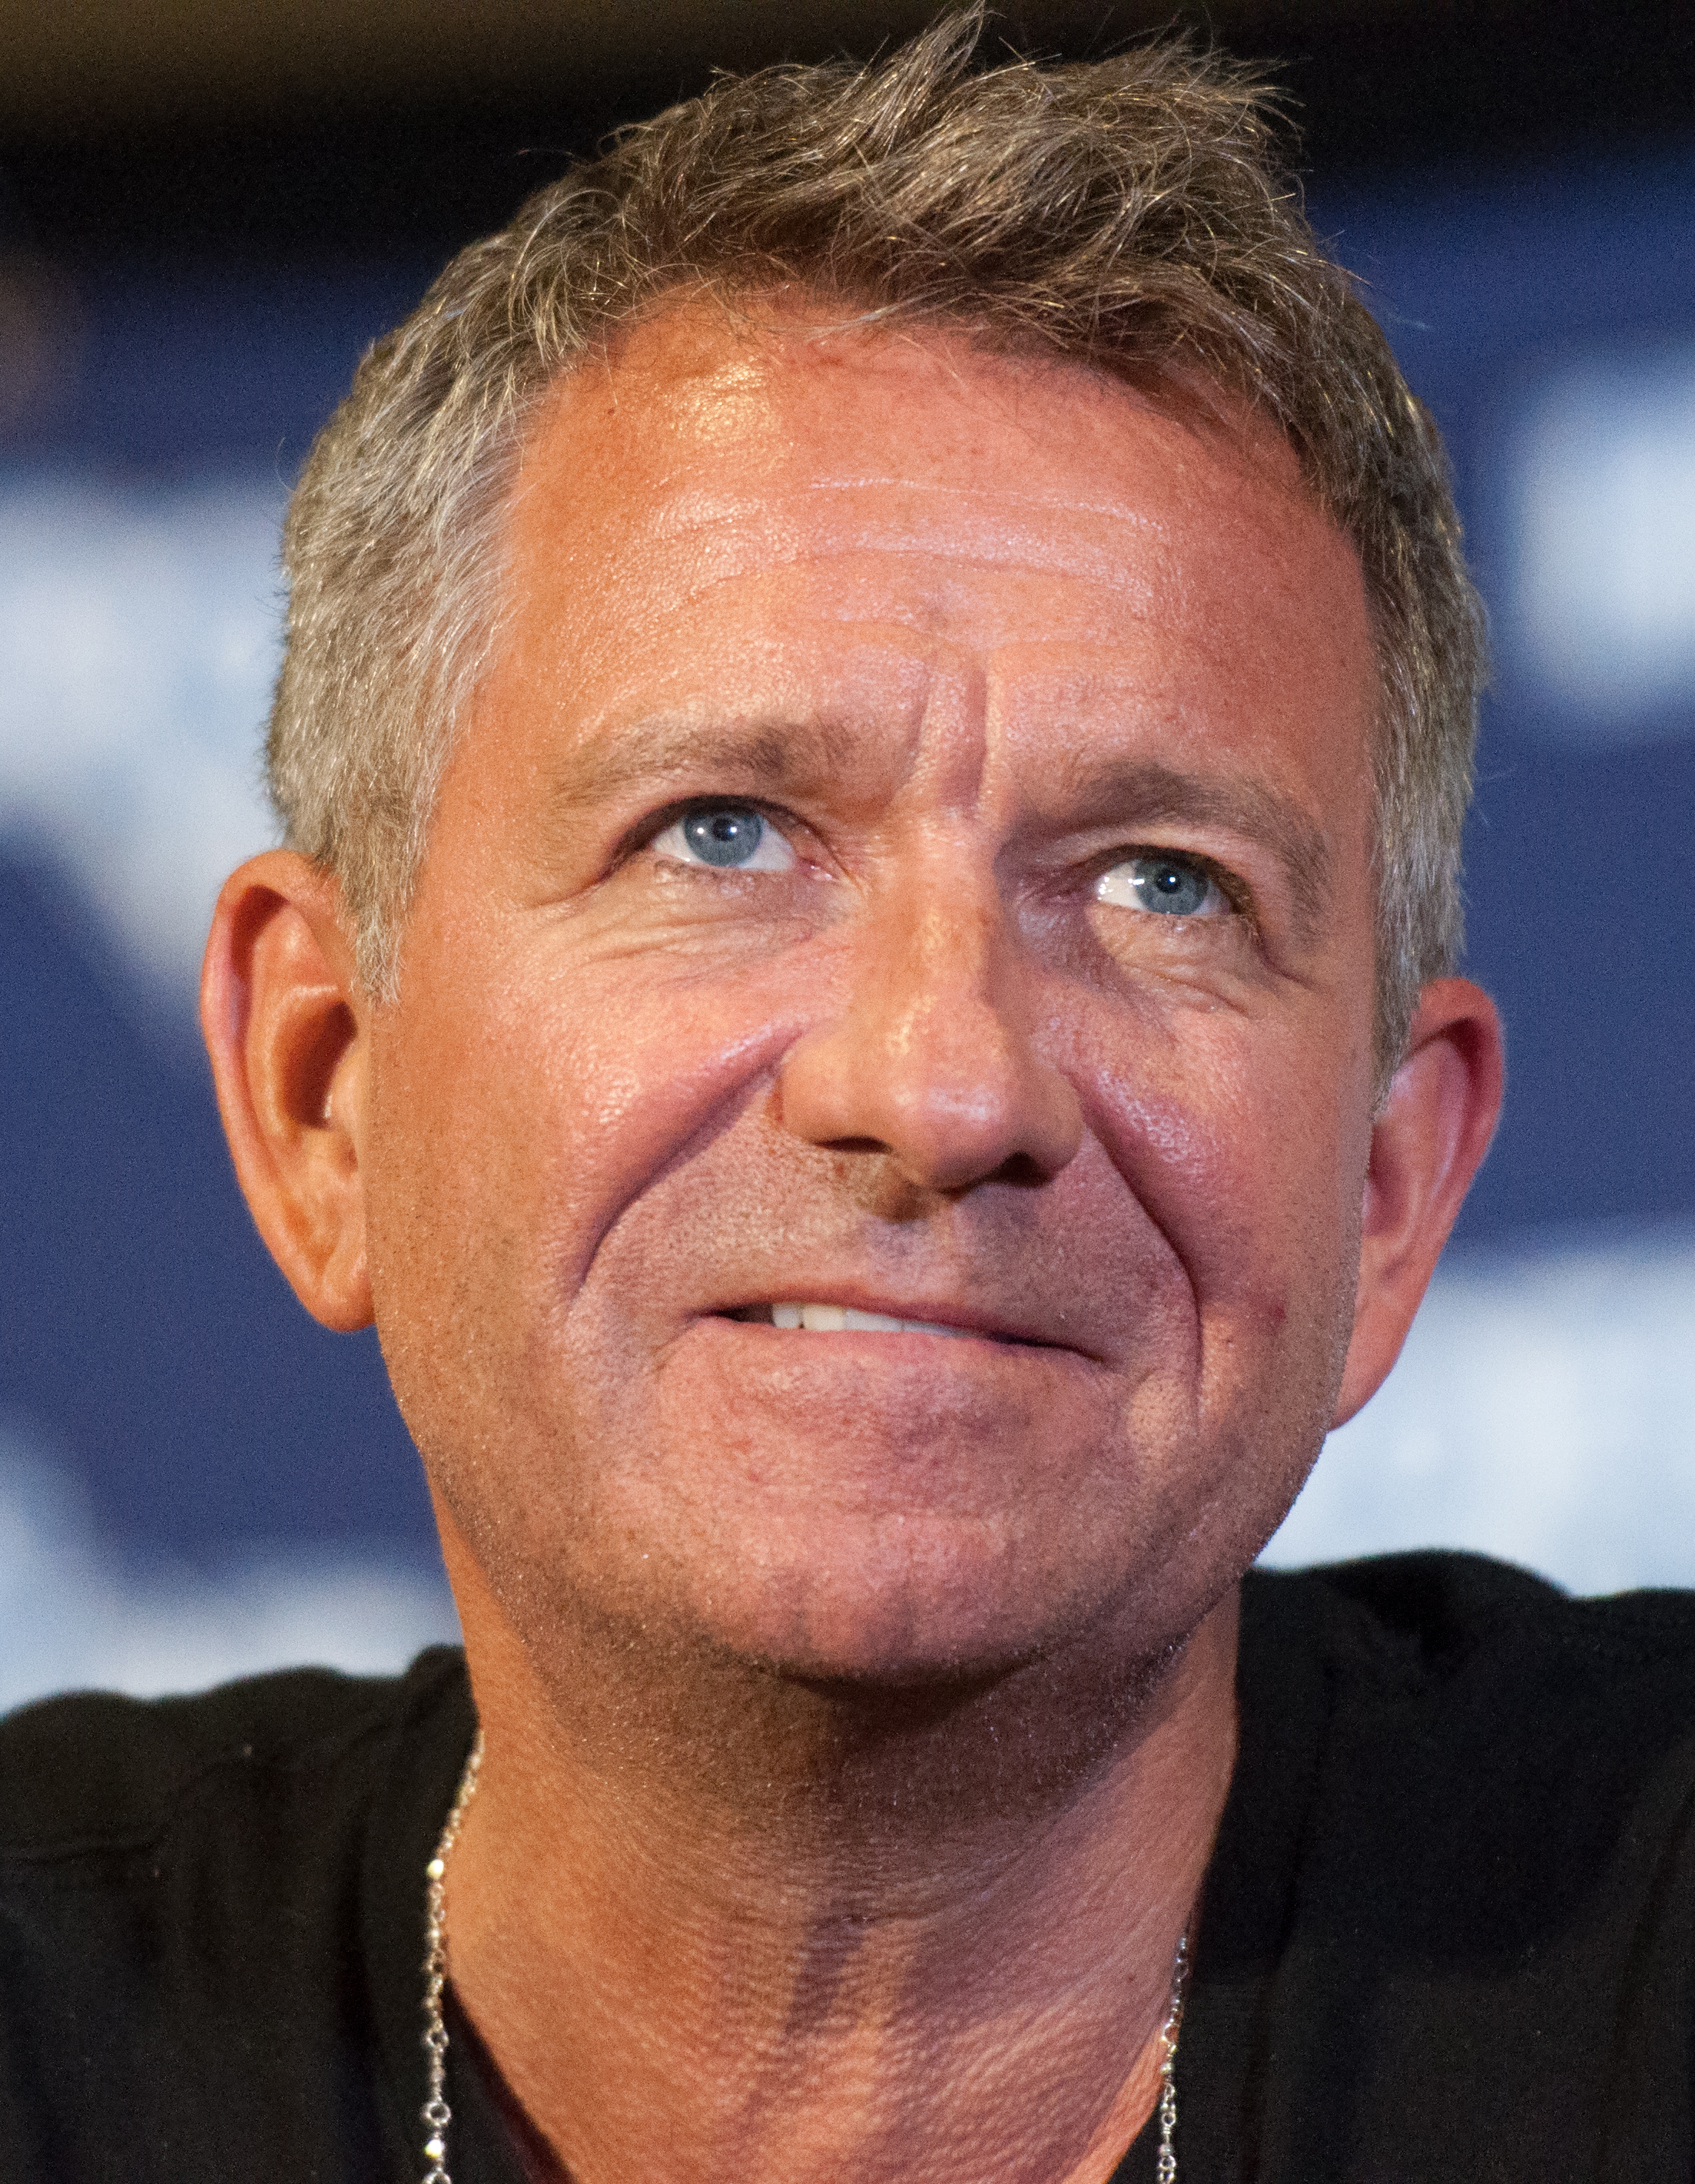 The 54-year old son of father  Jon Pertwee and mother Ingeborg Rhoesa Sean Pertwee in 2018 photo. Sean Pertwee earned a  million dollar salary - leaving the net worth at 5 million in 2018